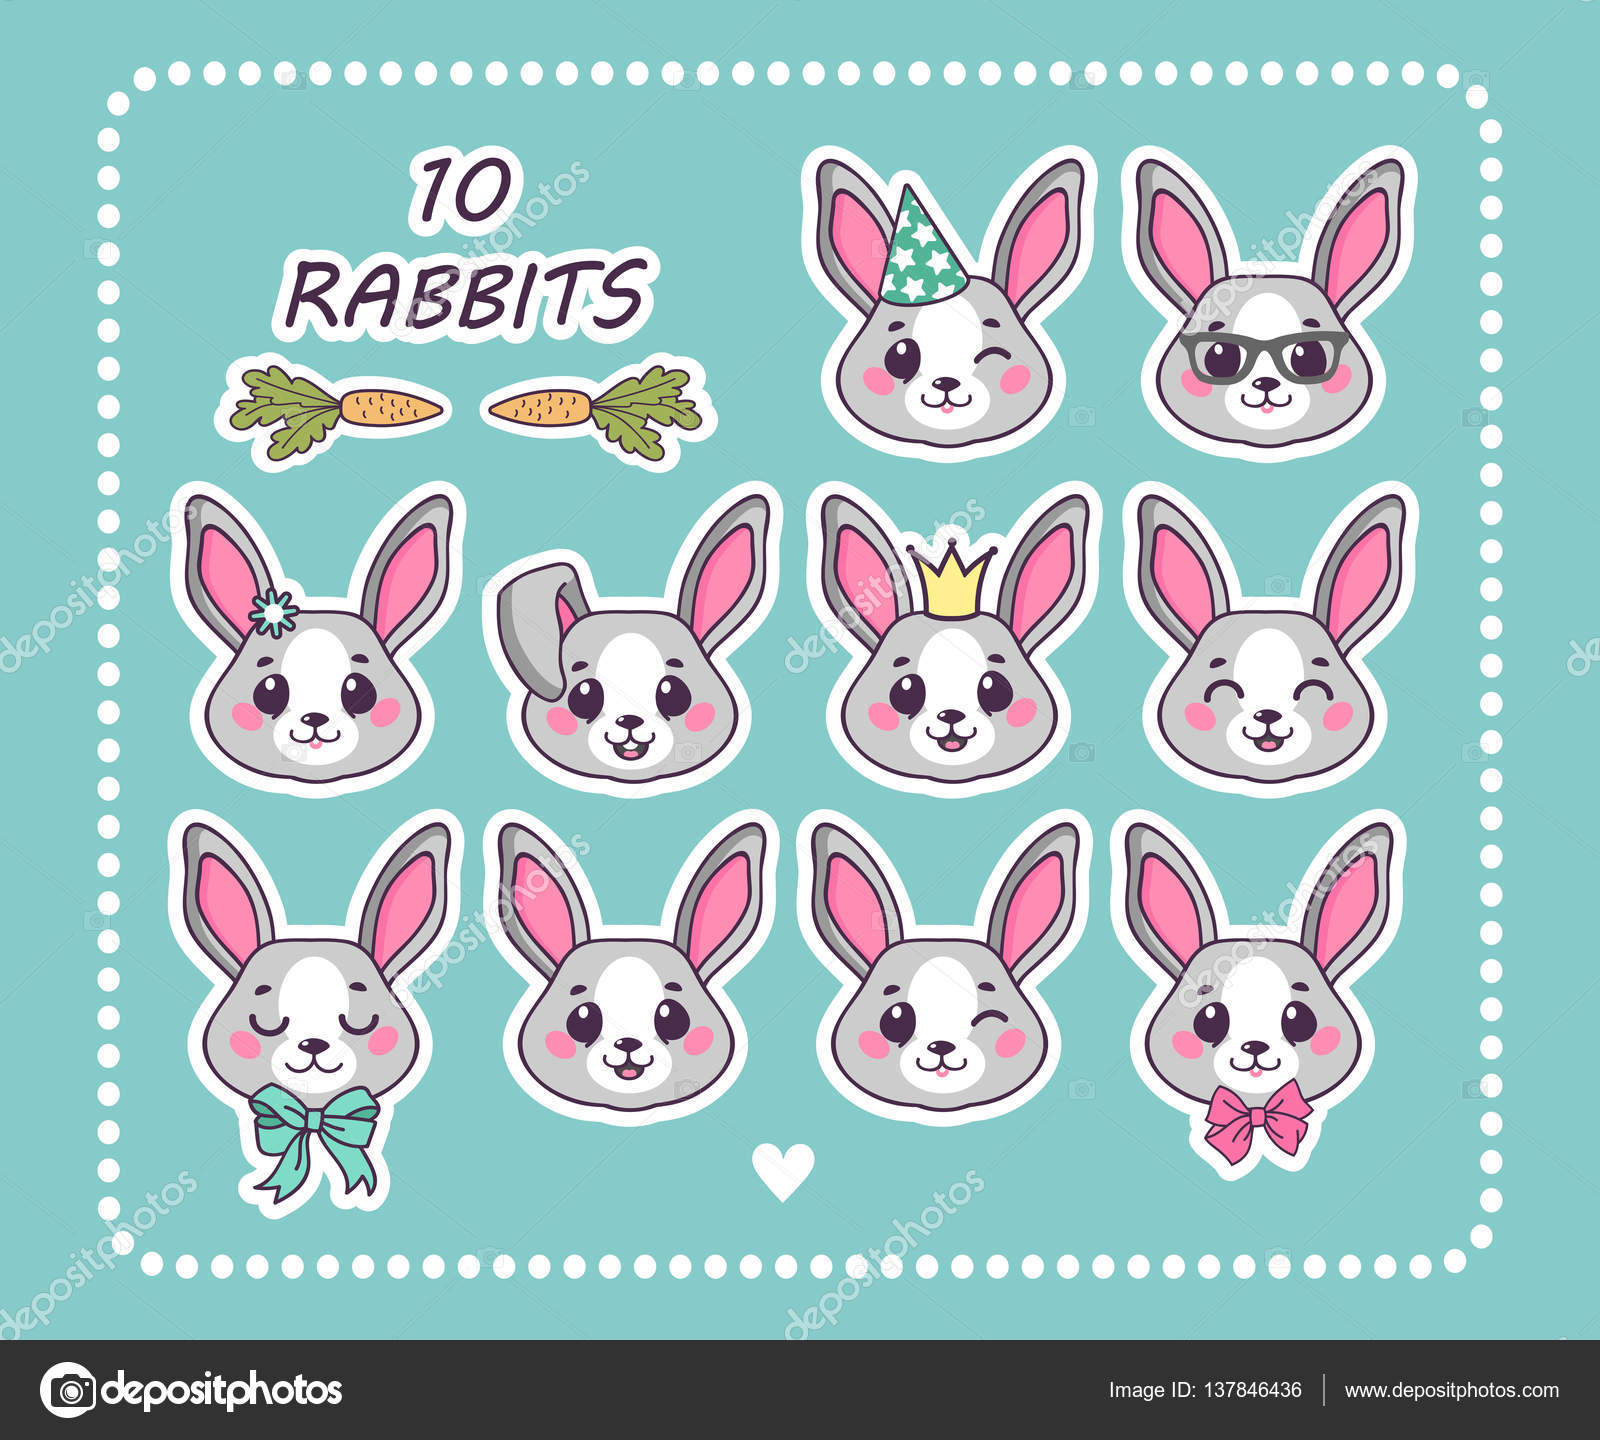 Set 10 sticker rabbit with different emotions. Cute rabbits. Isolated  rabbit for design. Easter bunny. Carrots. Cute bunnies for your design.